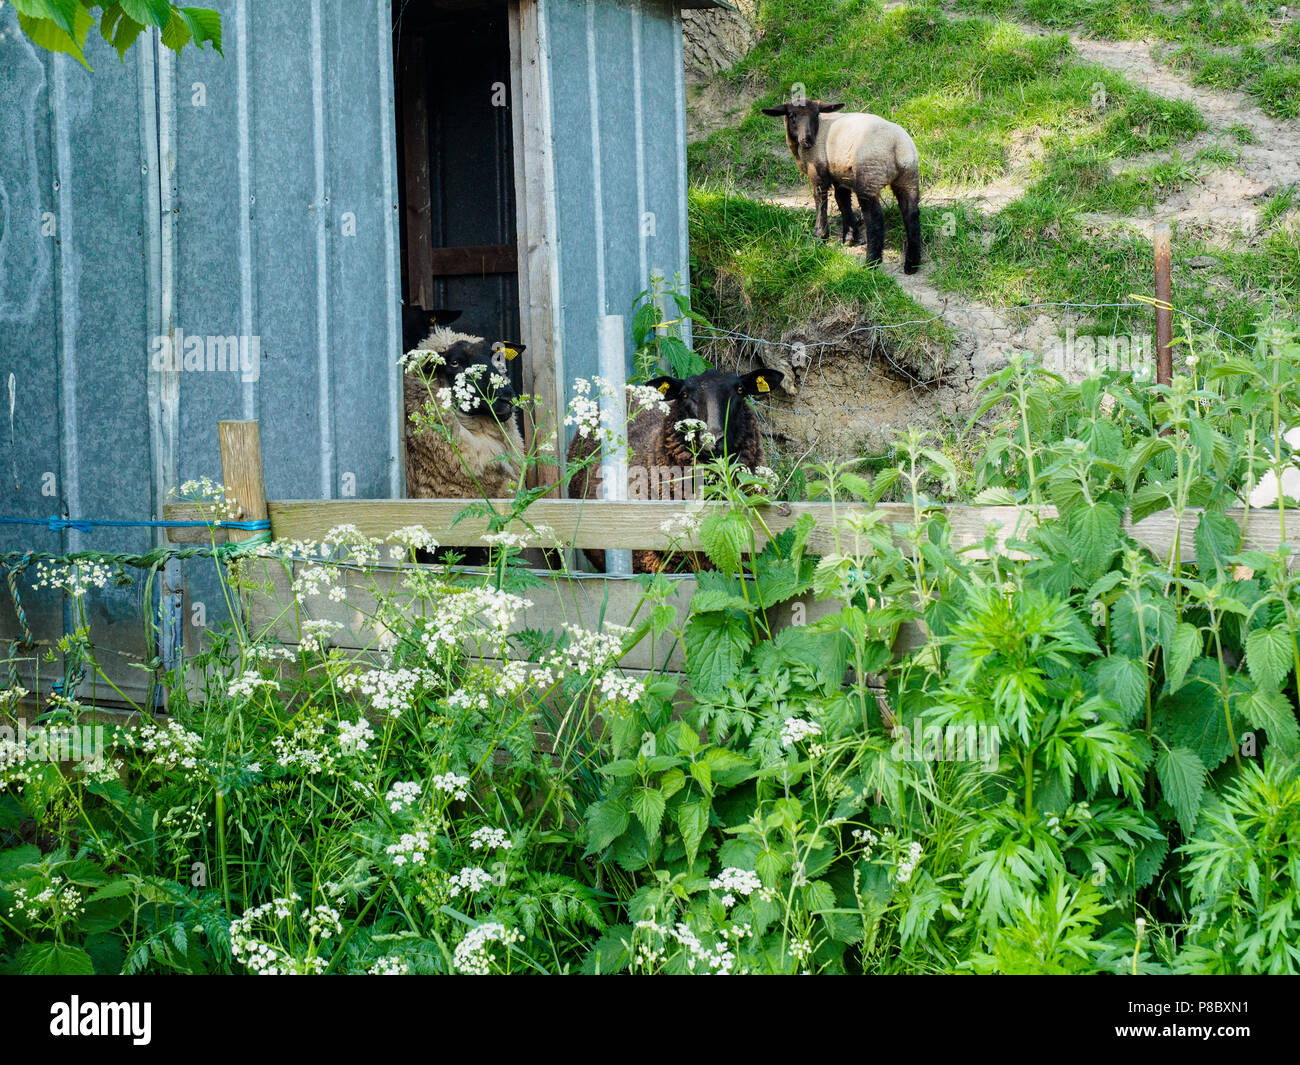 Sheep looking at camera as they leave their shed, Soby, Aero, Denmark, Europe. - Stock Image